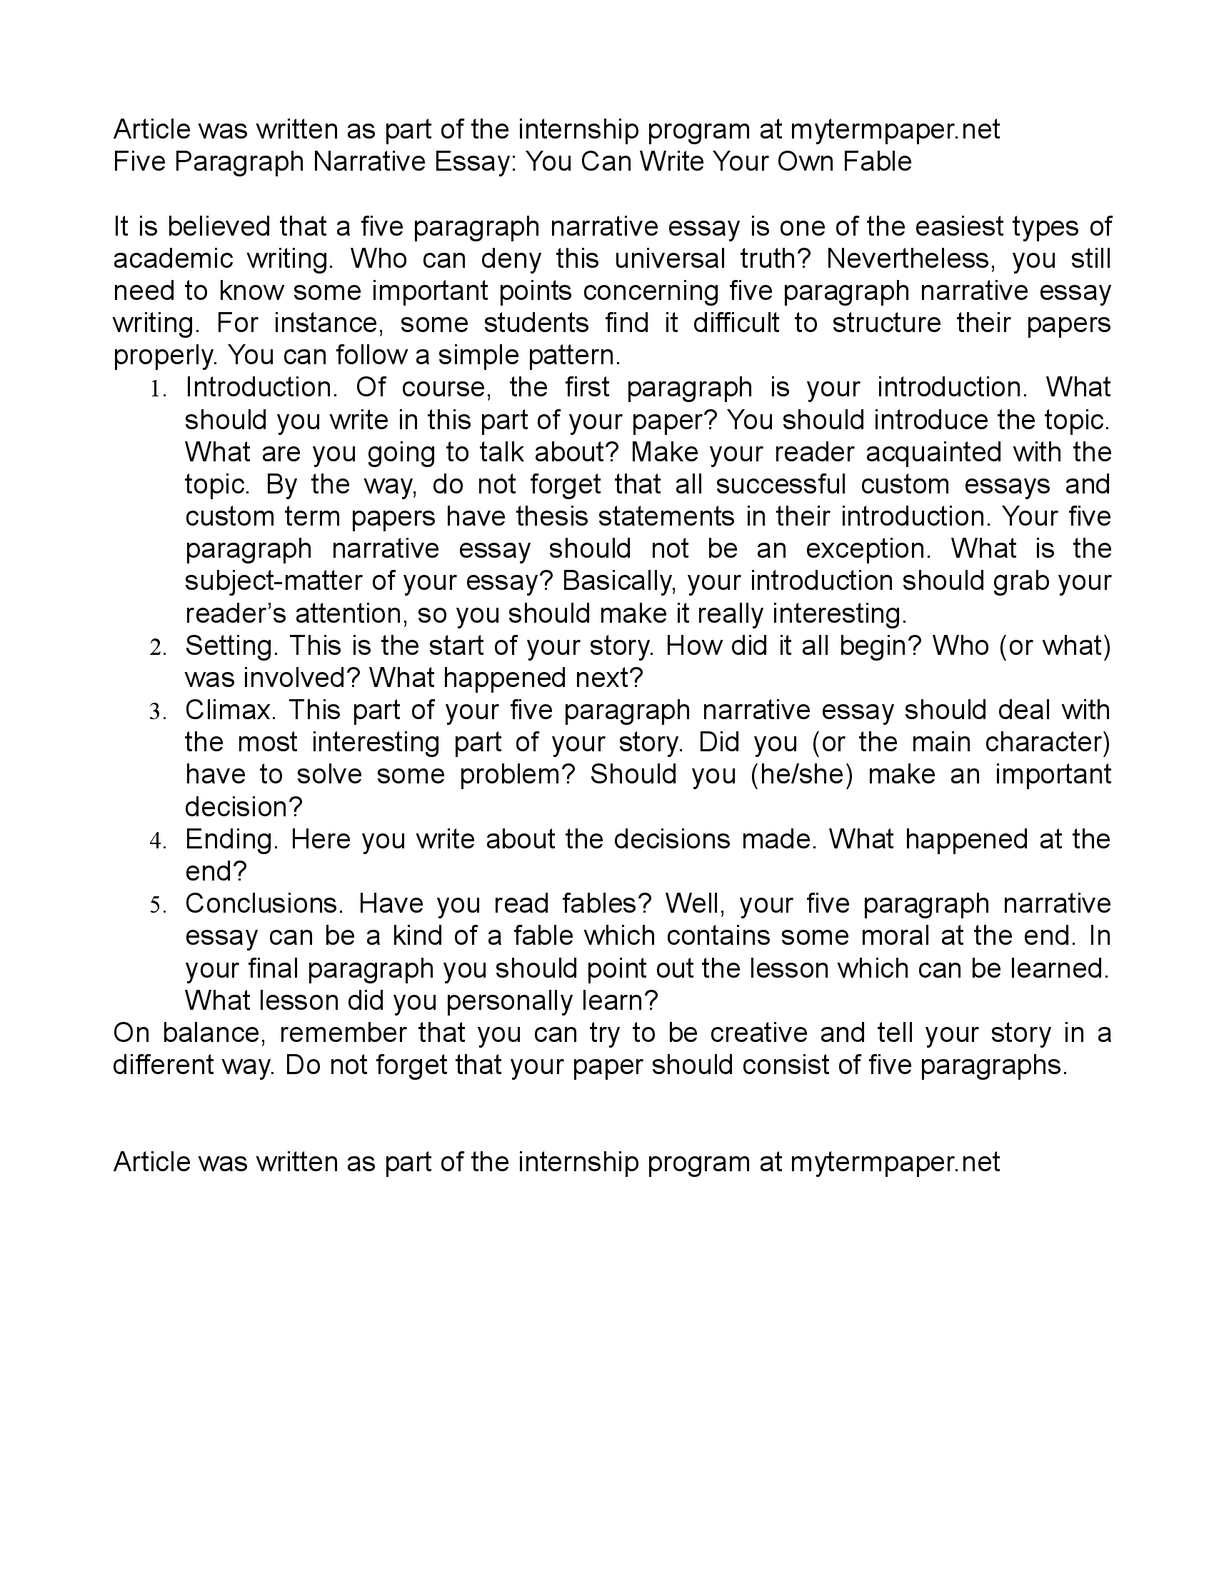 002 Paragraph Essay Example College Do Essays Have To Paragraphs Calam Eacute O Five Paragra Excellent 5 Pdf Full